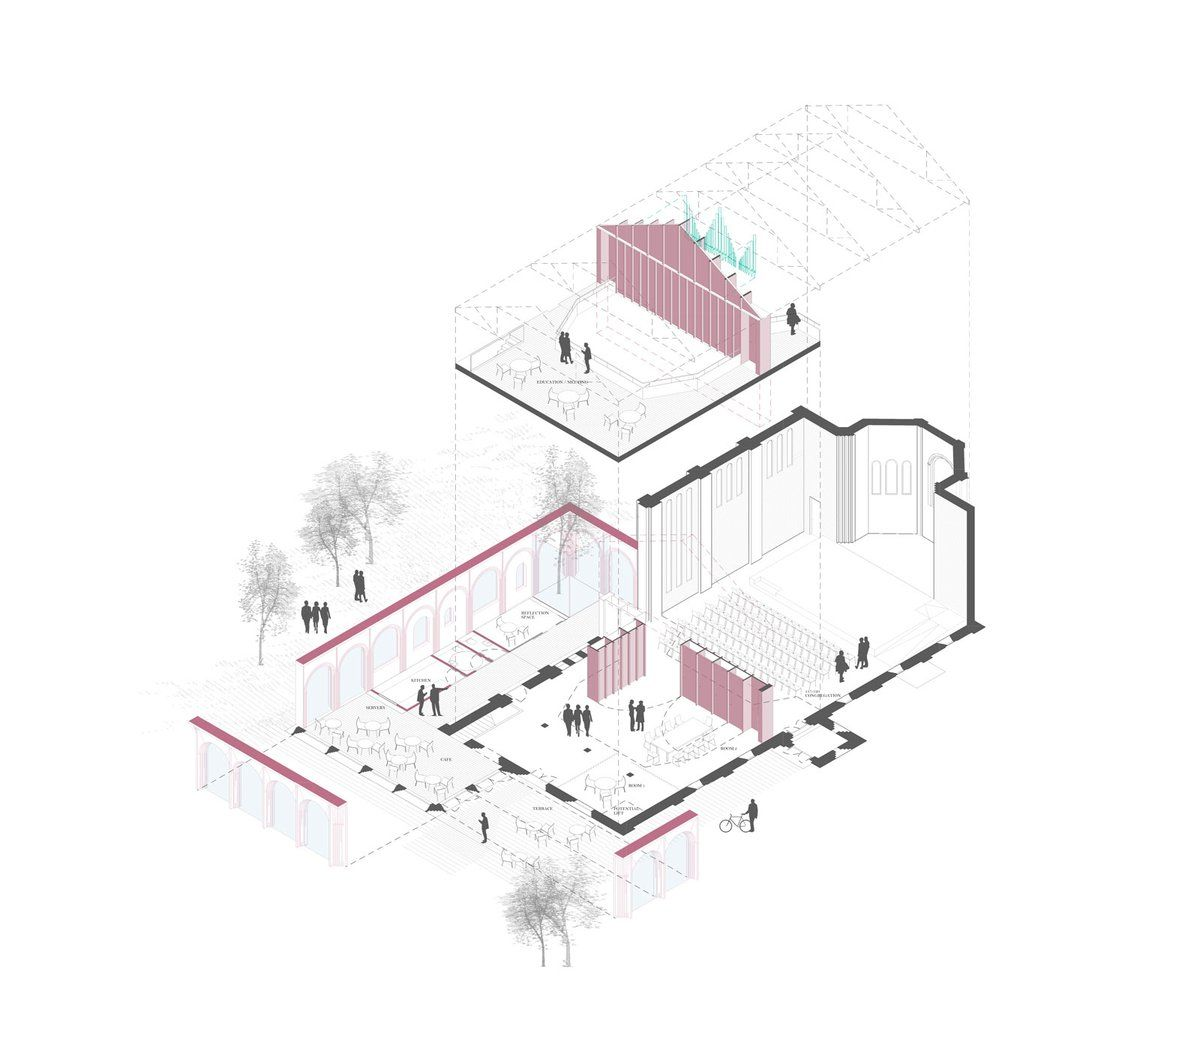 Axog architectural sketches drawing pinterest axog architecture illustrationsarchitecture graphicsarchitecture drawingspresentation stylesarchitecture diagramsarchitectural pooptronica Images